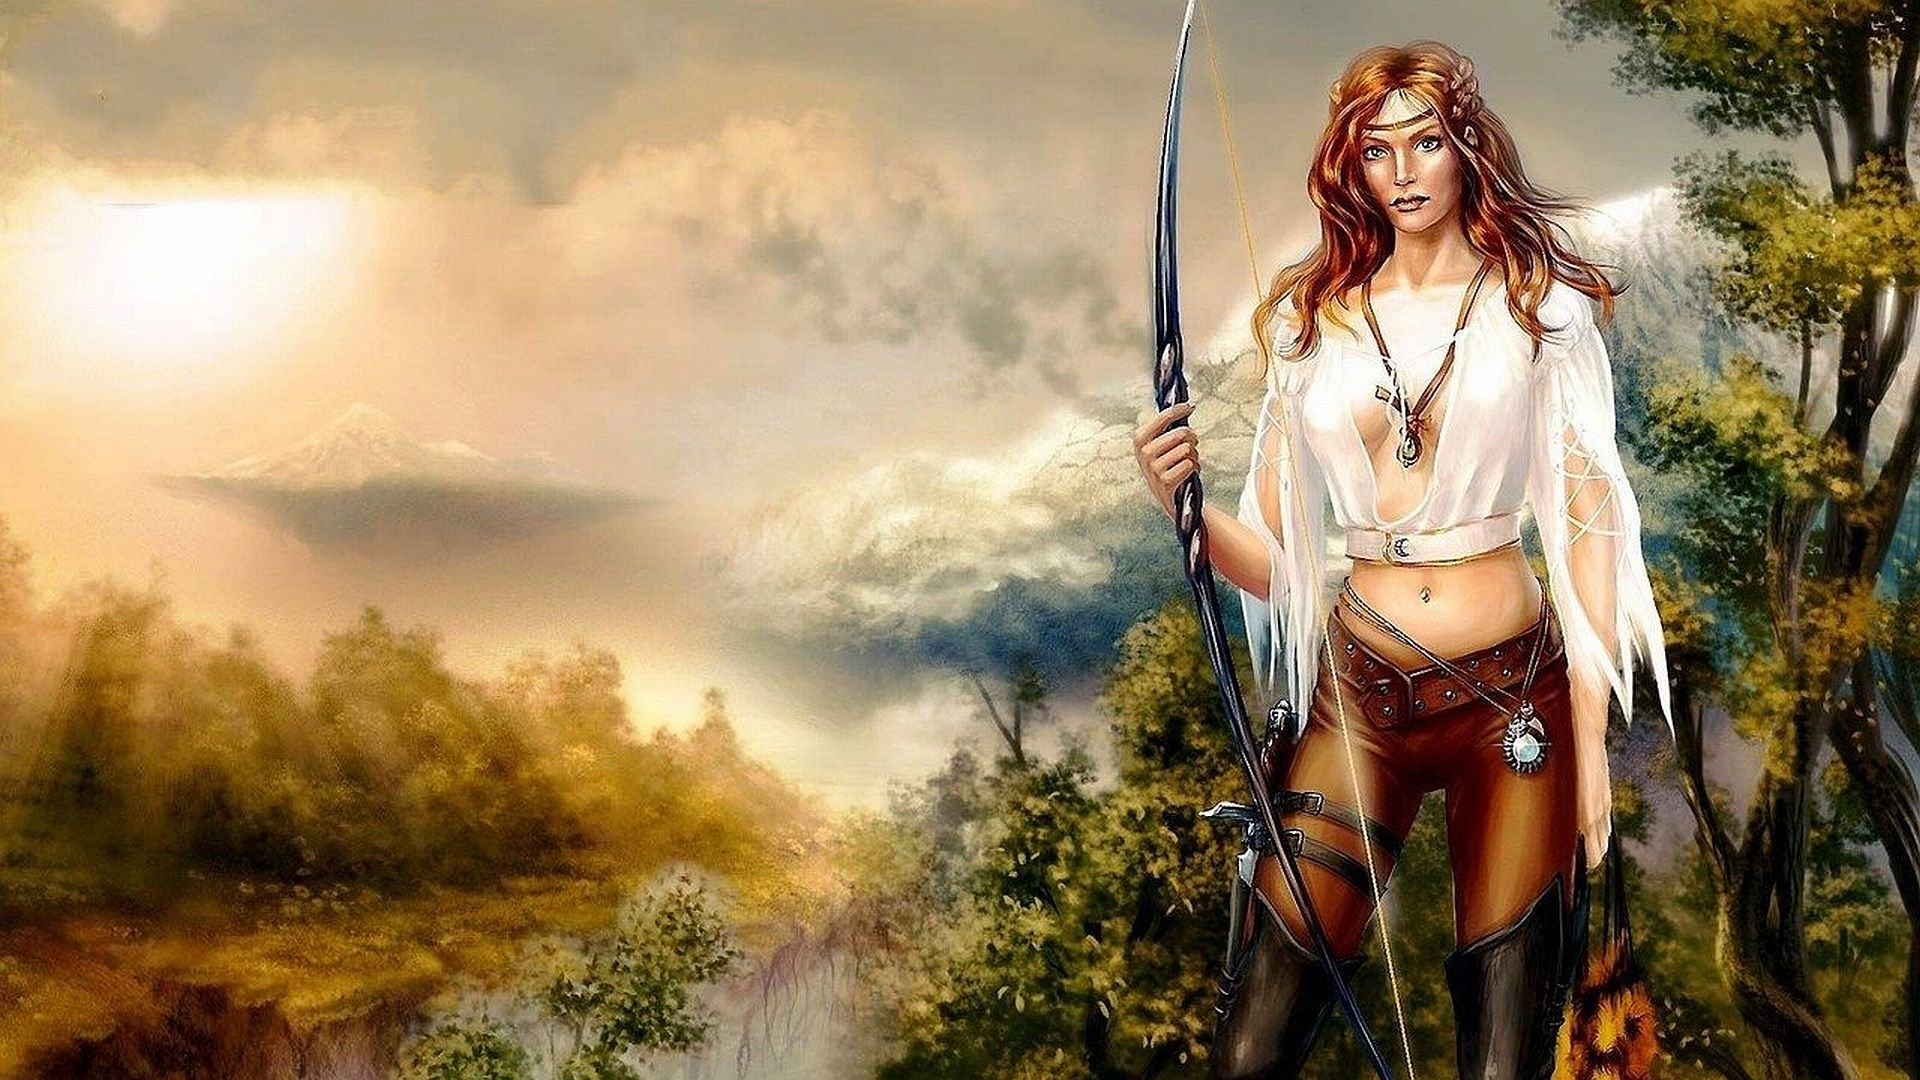 Image Detail For Fantasy Ipad Wallpaper: Image Detail For -Download Free Fantasy Wallpapers Women